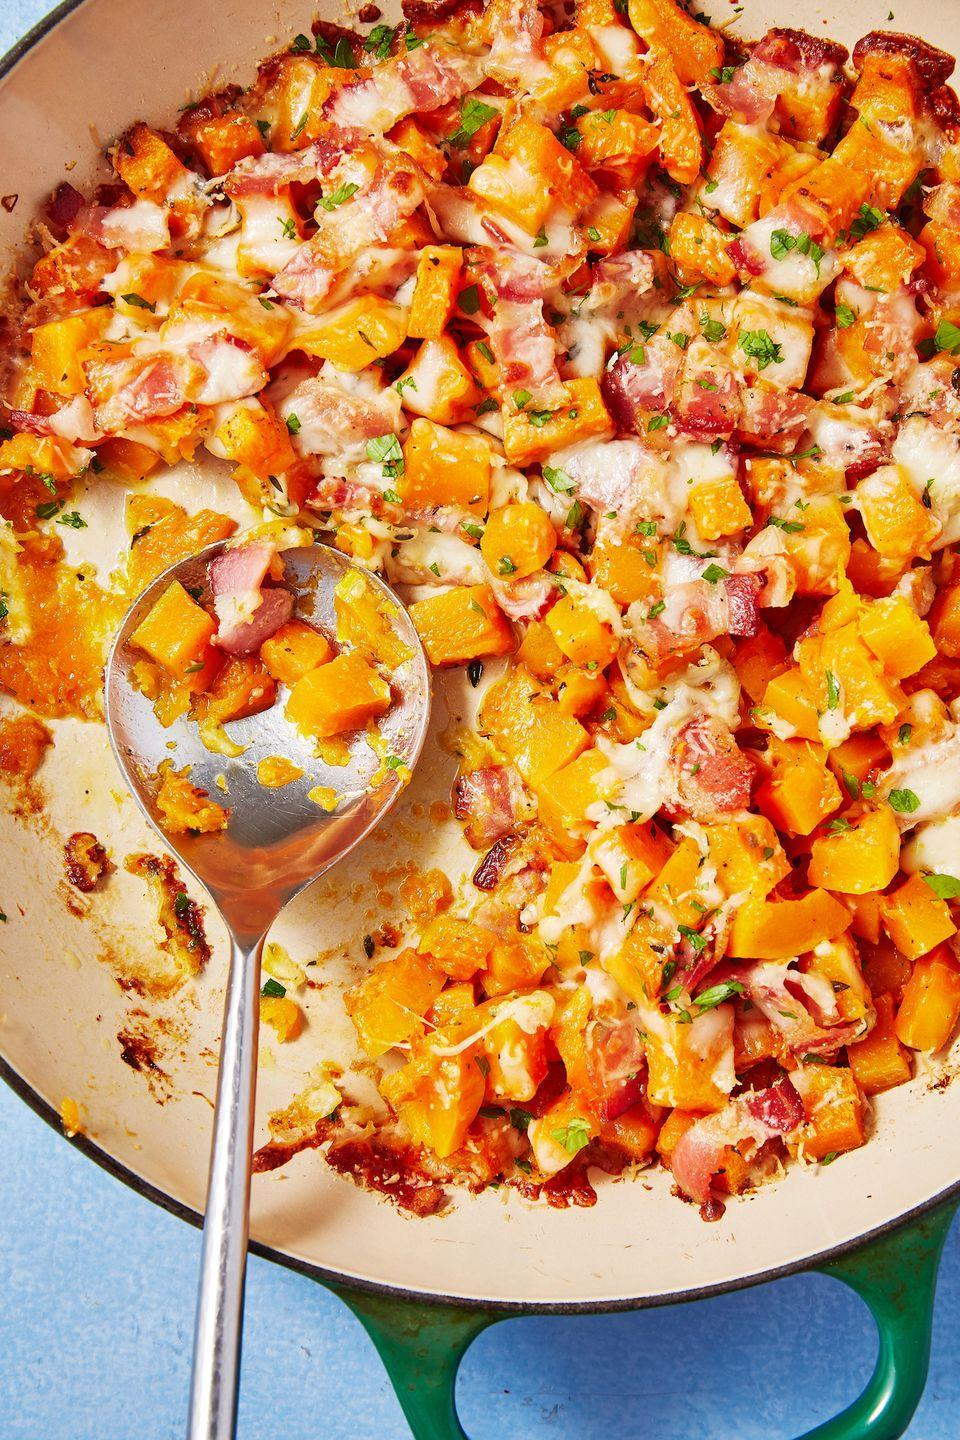 "<p>No matter what the centerpiece of your meal is, this cheesy squash skillet is sure to steal the show.</p><p>Get the recipe from <a href=""https://www.delish.com/cooking/recipe-ideas/recipes/a56379/cheesy-bacon-butternut-squash-recipe/"" rel=""nofollow noopener"" target=""_blank"" data-ylk=""slk:Delish"" class=""link rapid-noclick-resp"">Delish</a>.</p>"